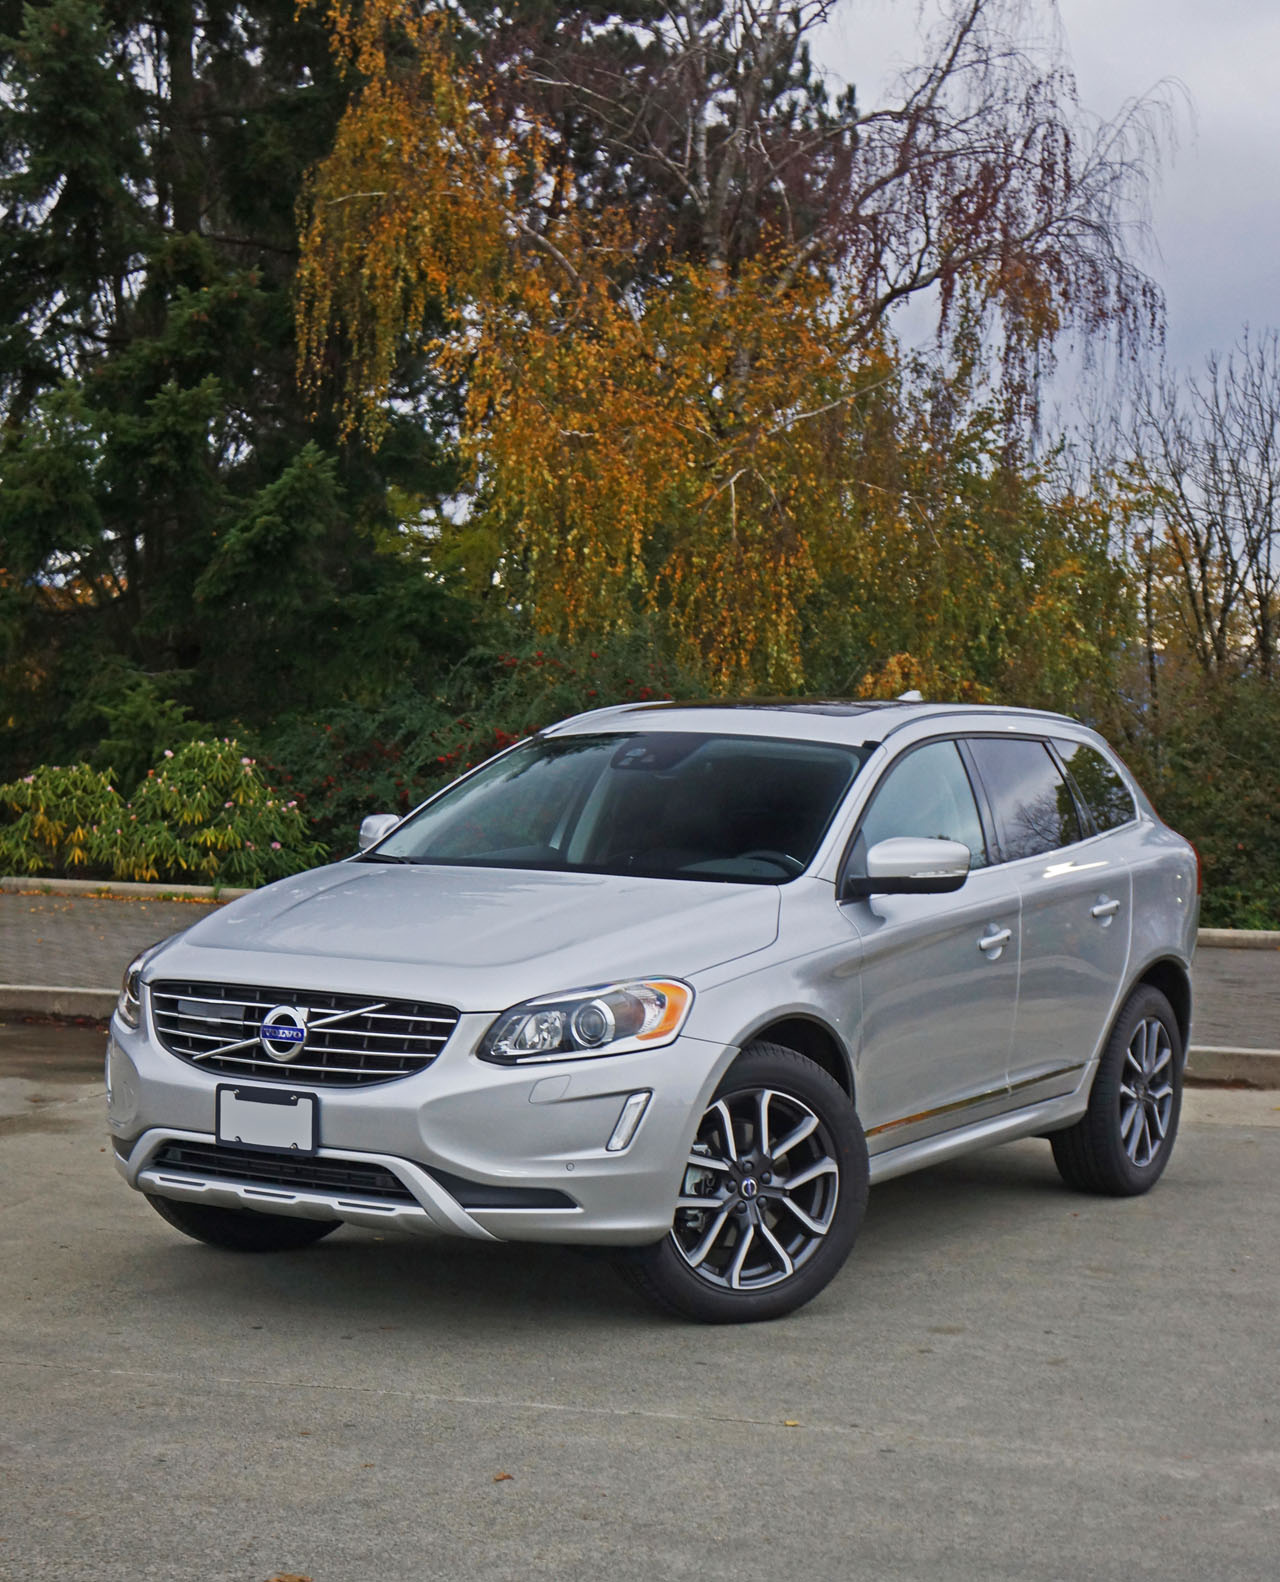 2015 Volvo Xc60 Review: 2017 Volvo XC60 T5 Drive-E AWD Special Edition Road Test